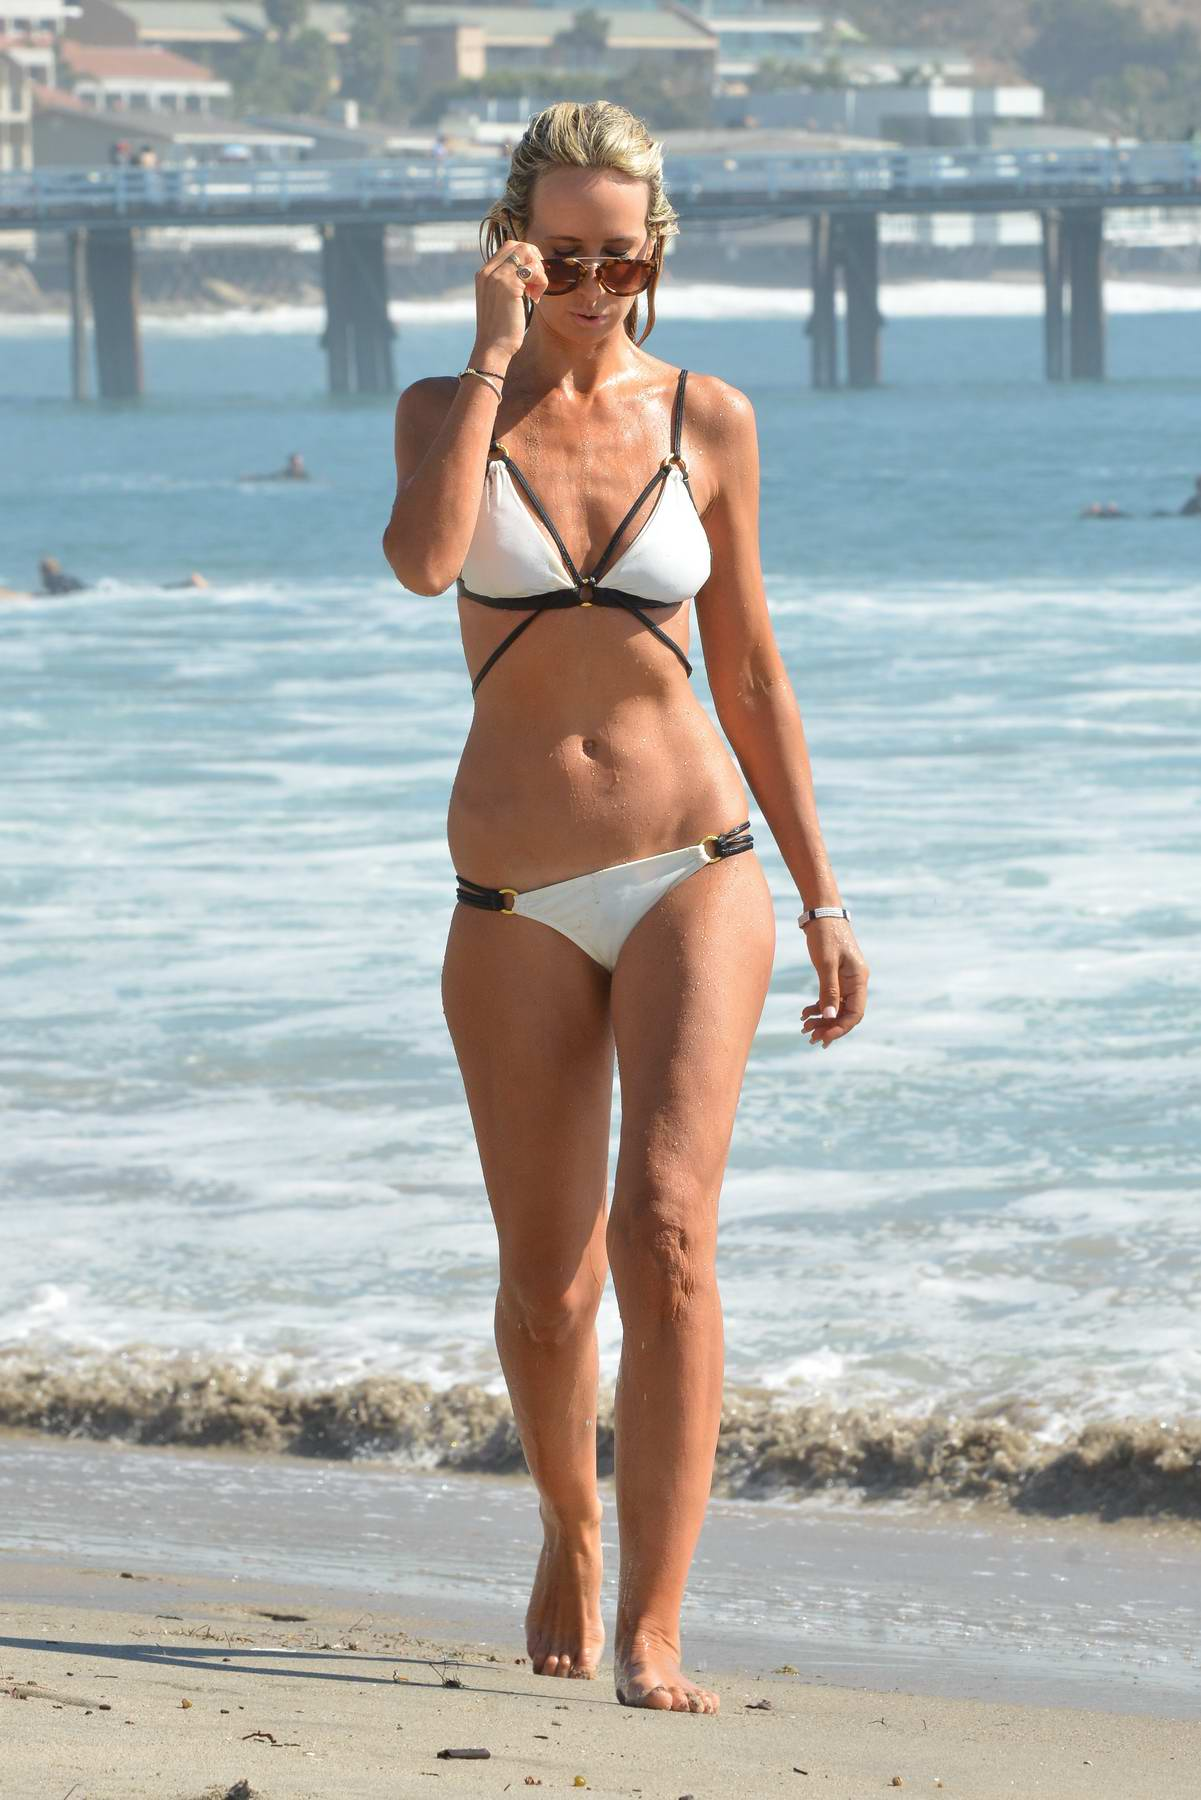 Lady Victoria Hervey in a white bikini enjoying her birthday weekend on the beach in Malibu, California